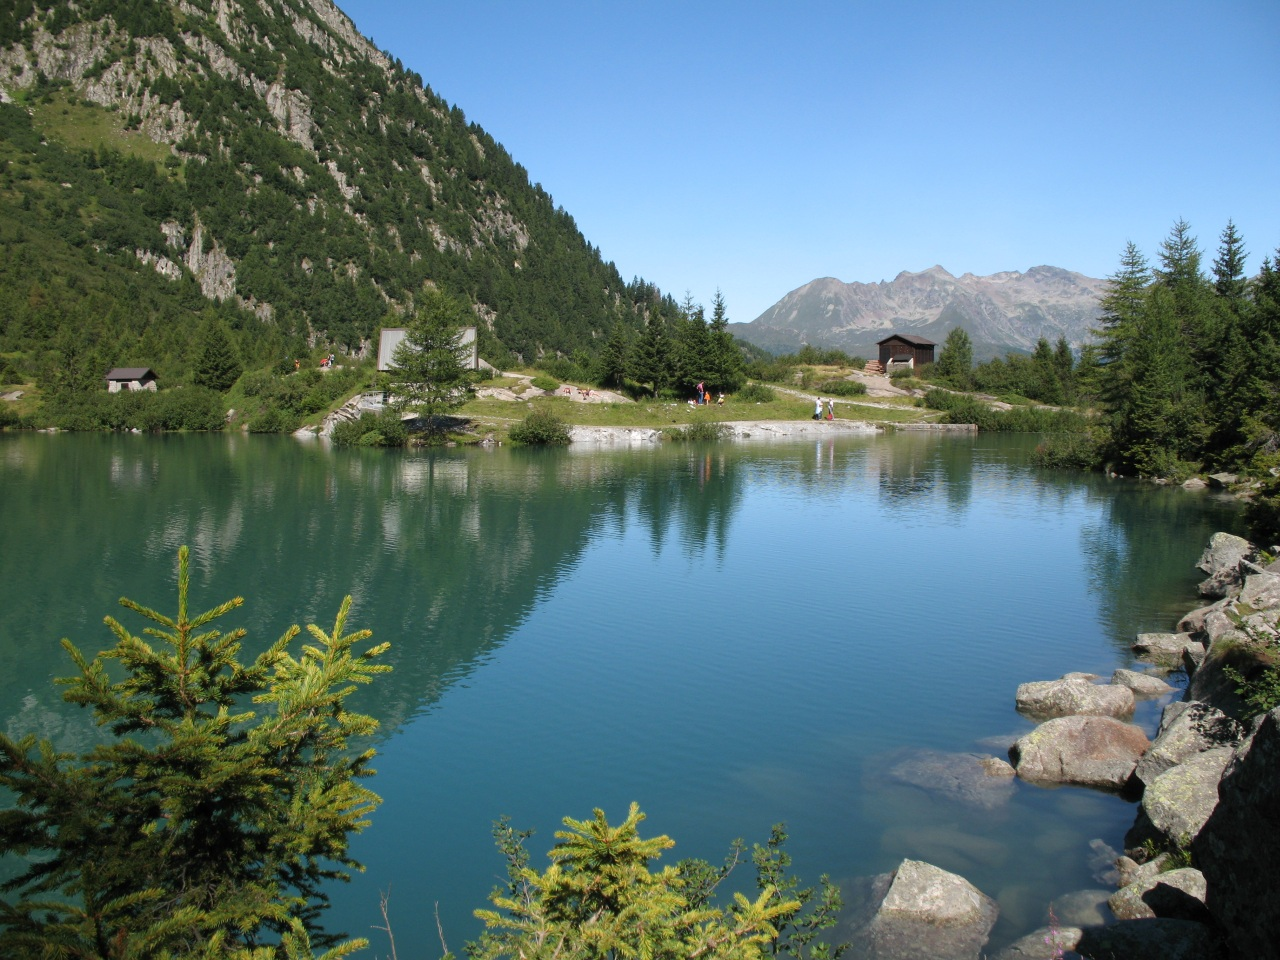 http://dic.academic.ru/pictures/wiki/files/73/Italian_Alps-Mountain_Lake.jpg